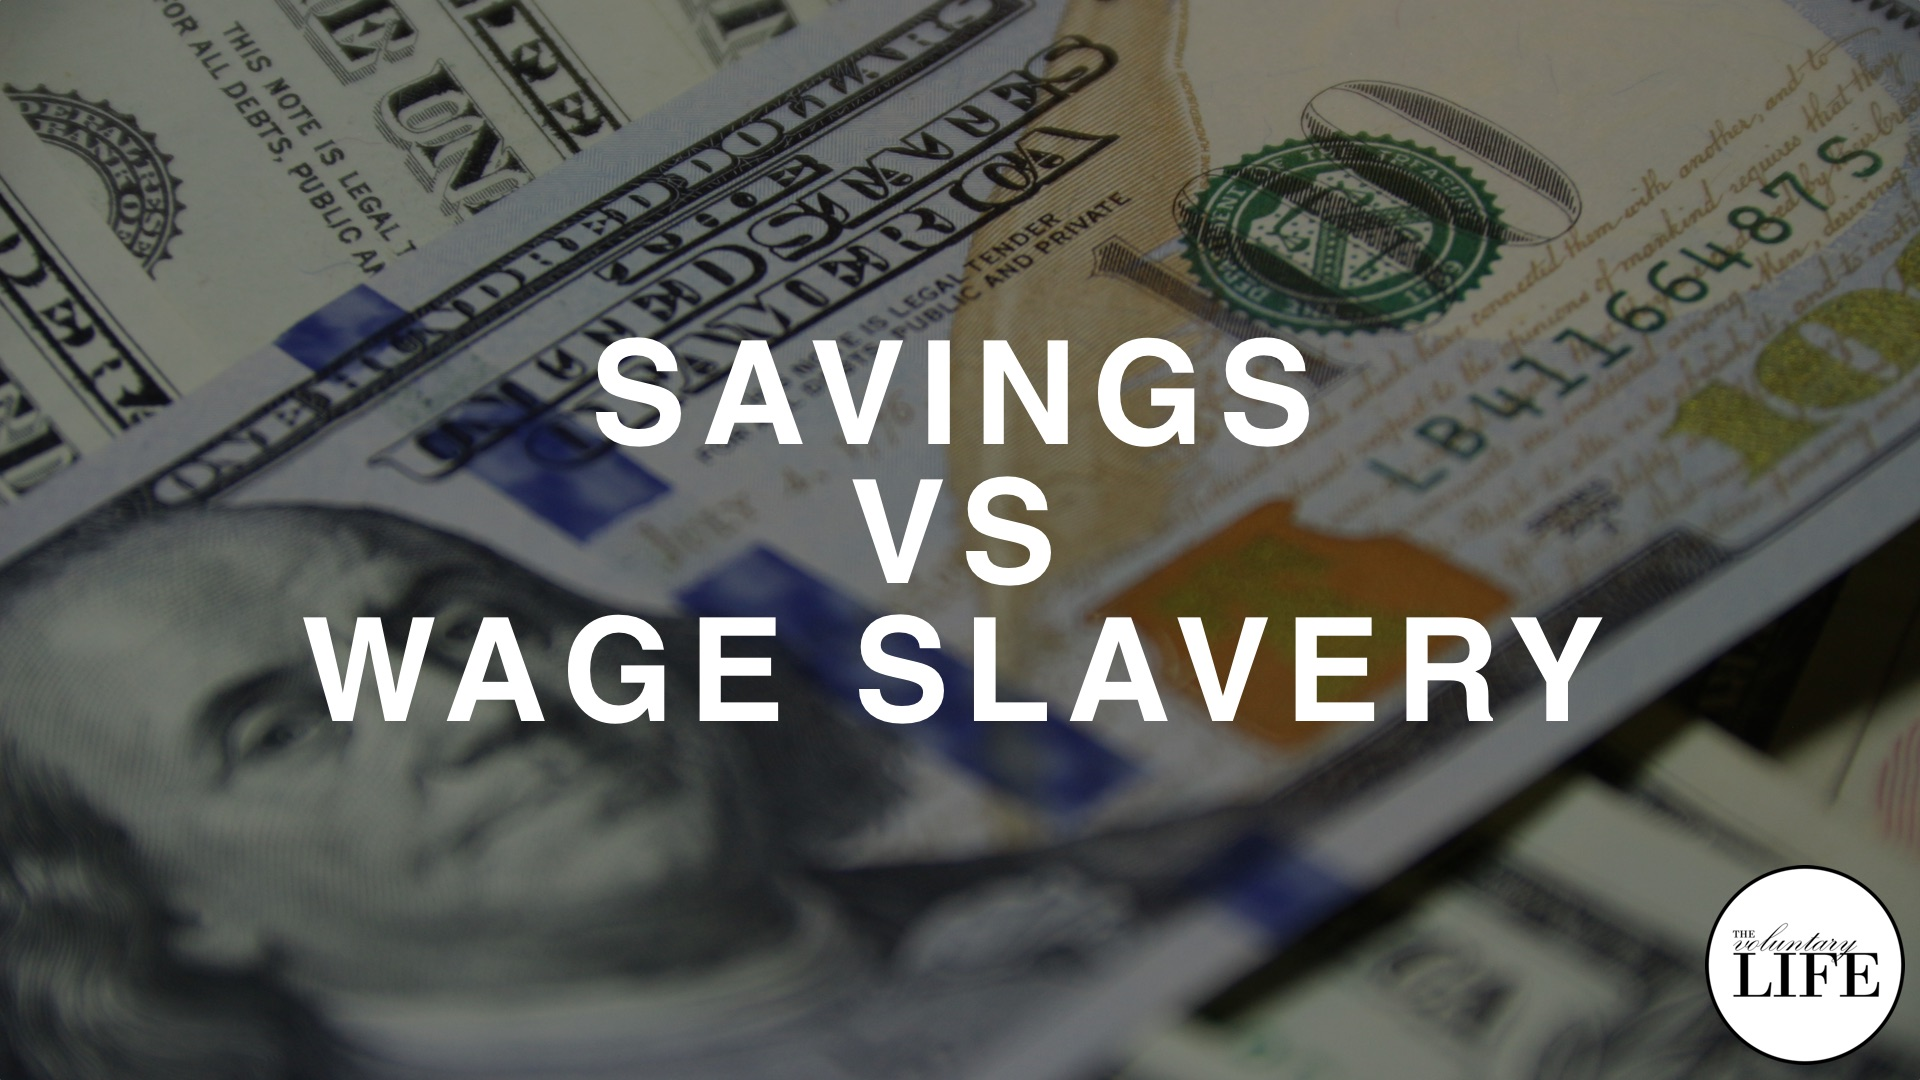 82 Savings Vs Wage Slavery